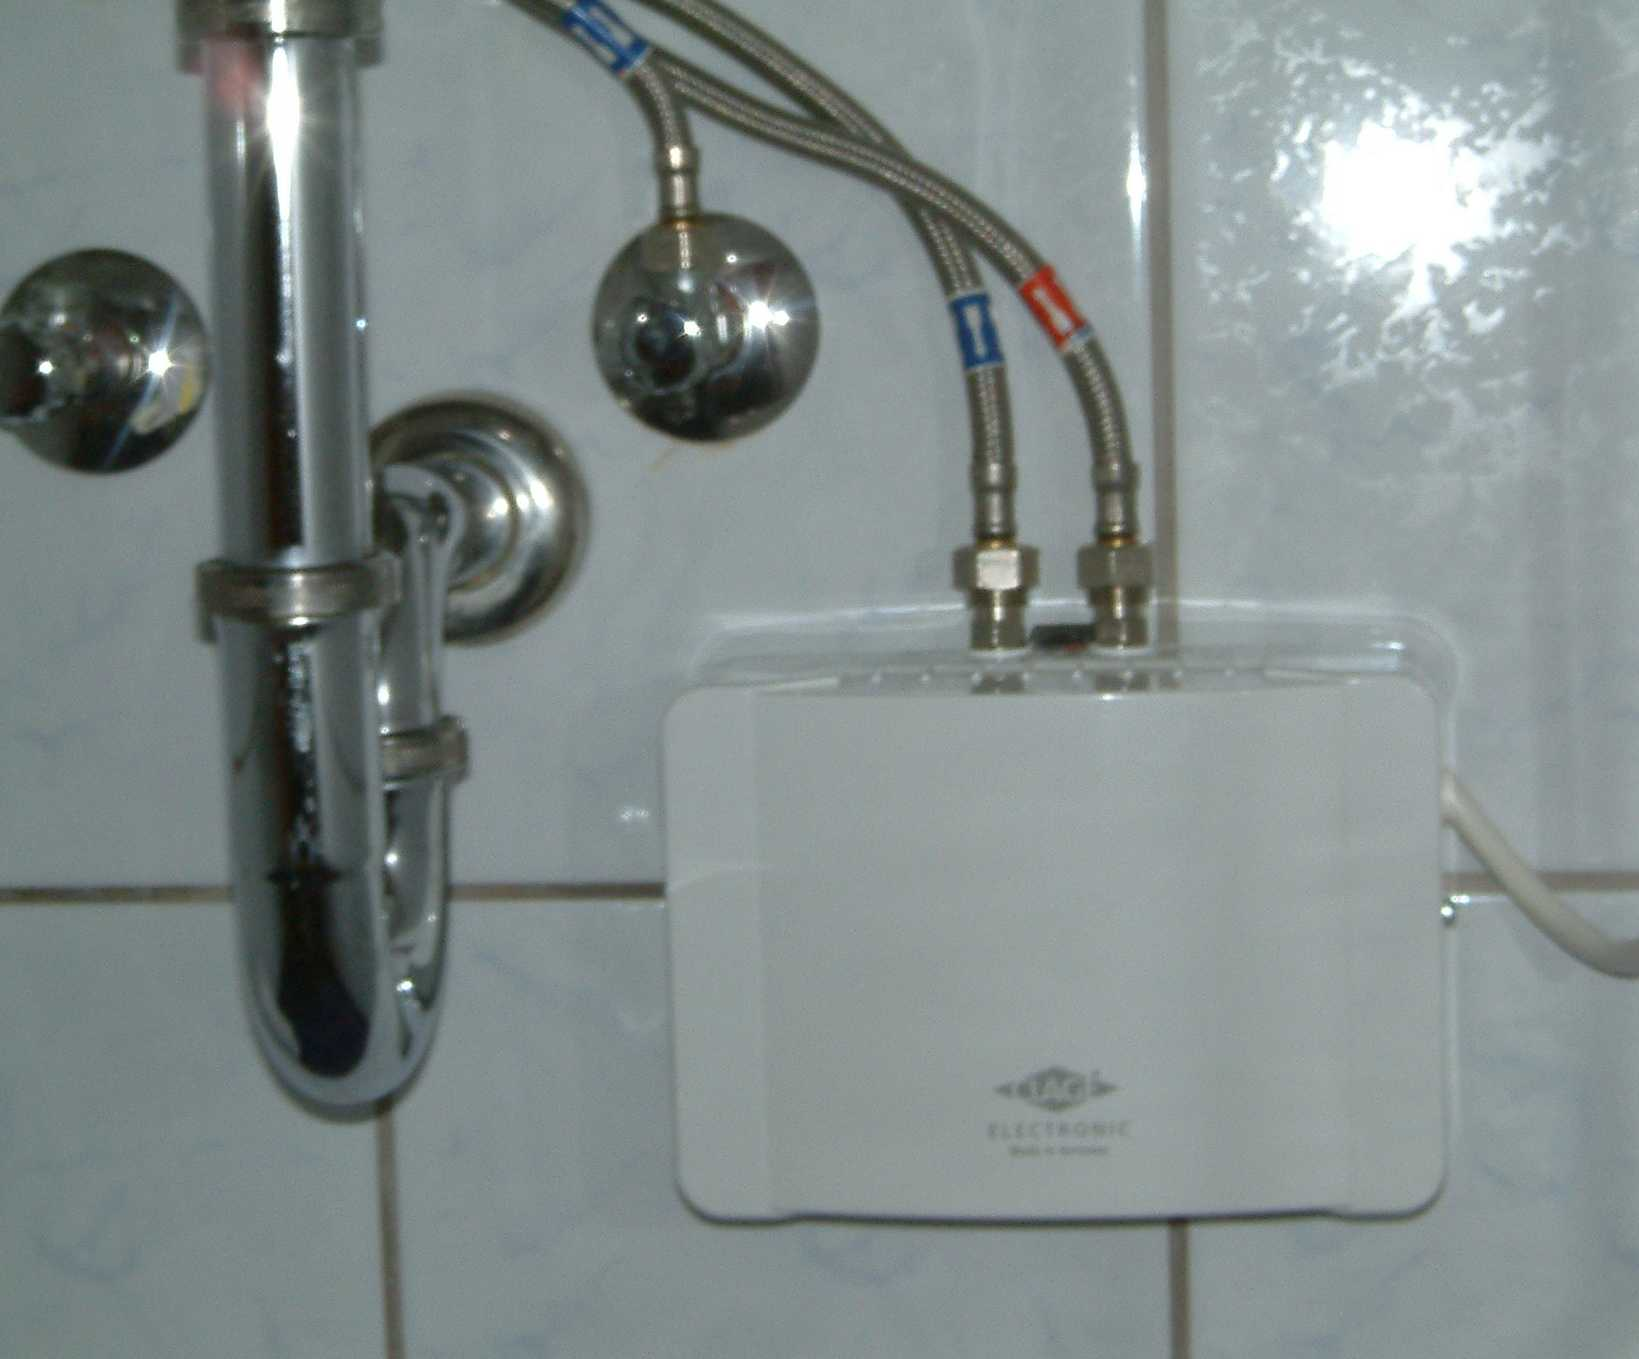 Ikea Badezimmer Installation The Most Simple And Stylish Water Heater In Bathroom That